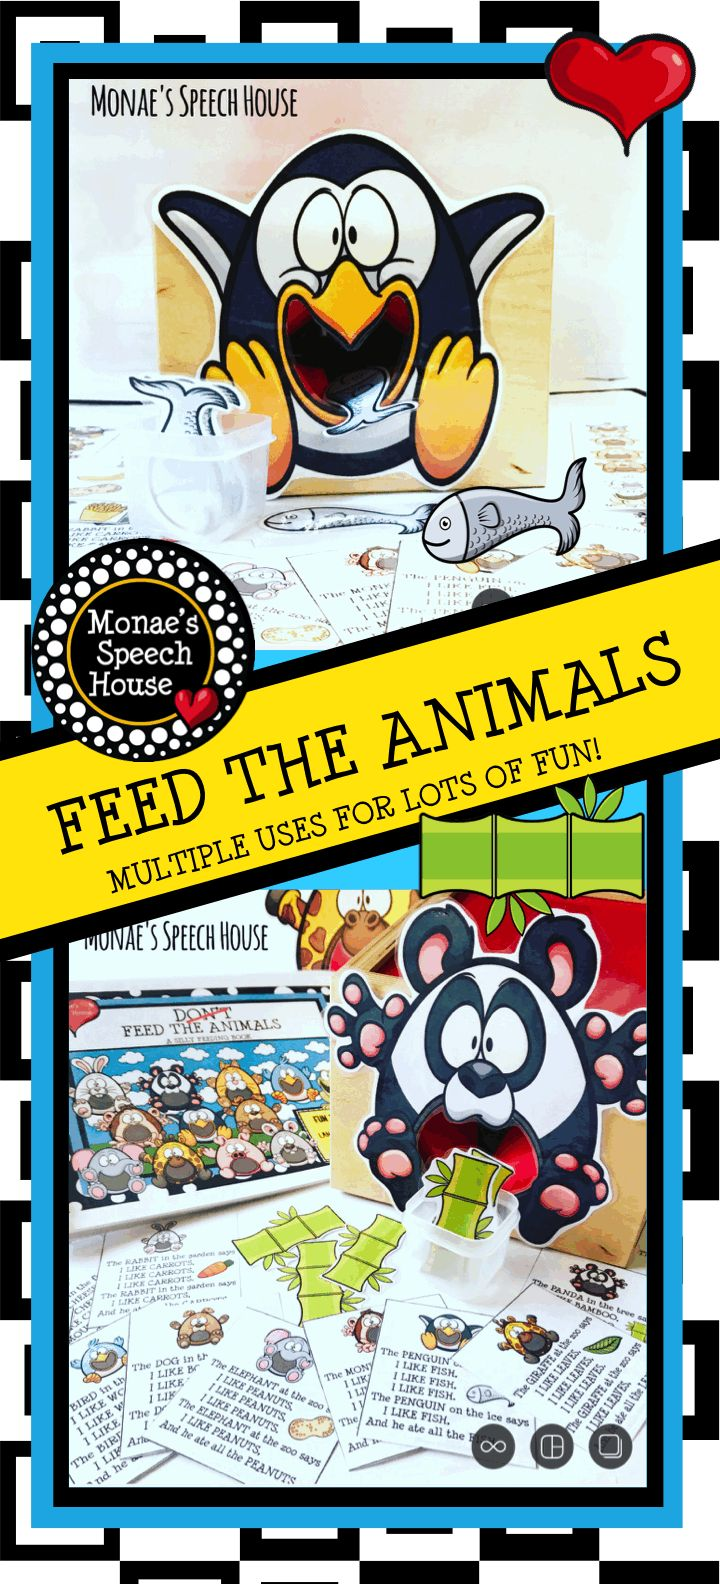 FEEDING ANIMALS AAC / PECS Early Reader Speech Therapy Autism, Early Childhood, Pre-k Activity Packet with 90 pages for preschool, Kindergarten, 1st,, 2nd, 3rd, 4th, 5th grader, self-contained special ed and autism programs. Work on vocabulary, receptive and expressive language skills, following directions, answering WH questions, describing, and more. Includes interactive storybook, question cards, bingo/vocabulary board, Poster, and more. {preK, first, second, special education, autism}